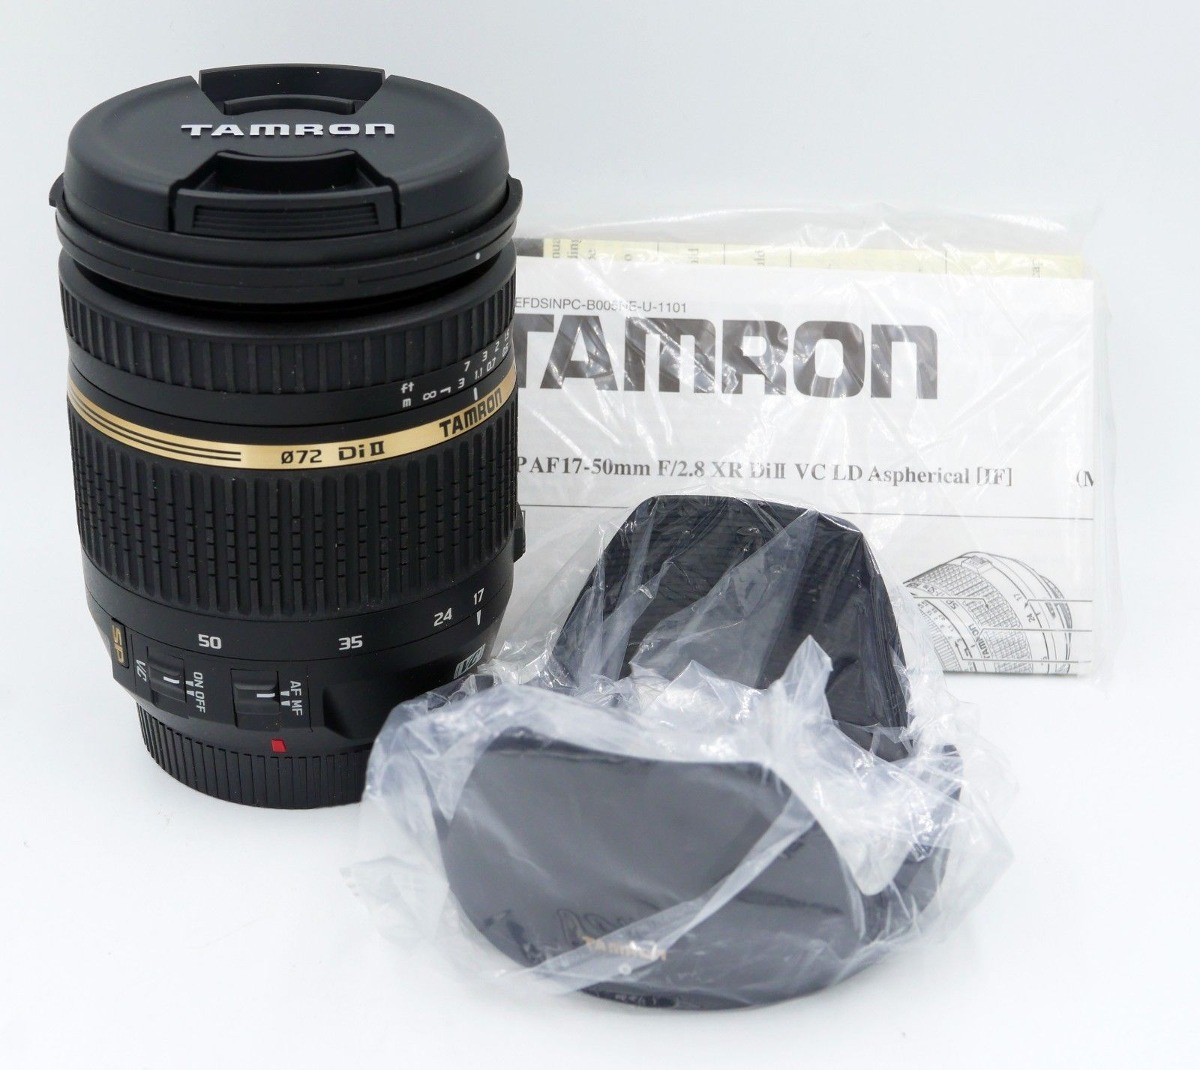 Tamron Sp B005 17 50mm F 28 Di Ii Xr Vc If Af Lente Par For Canon Ld Aspherical